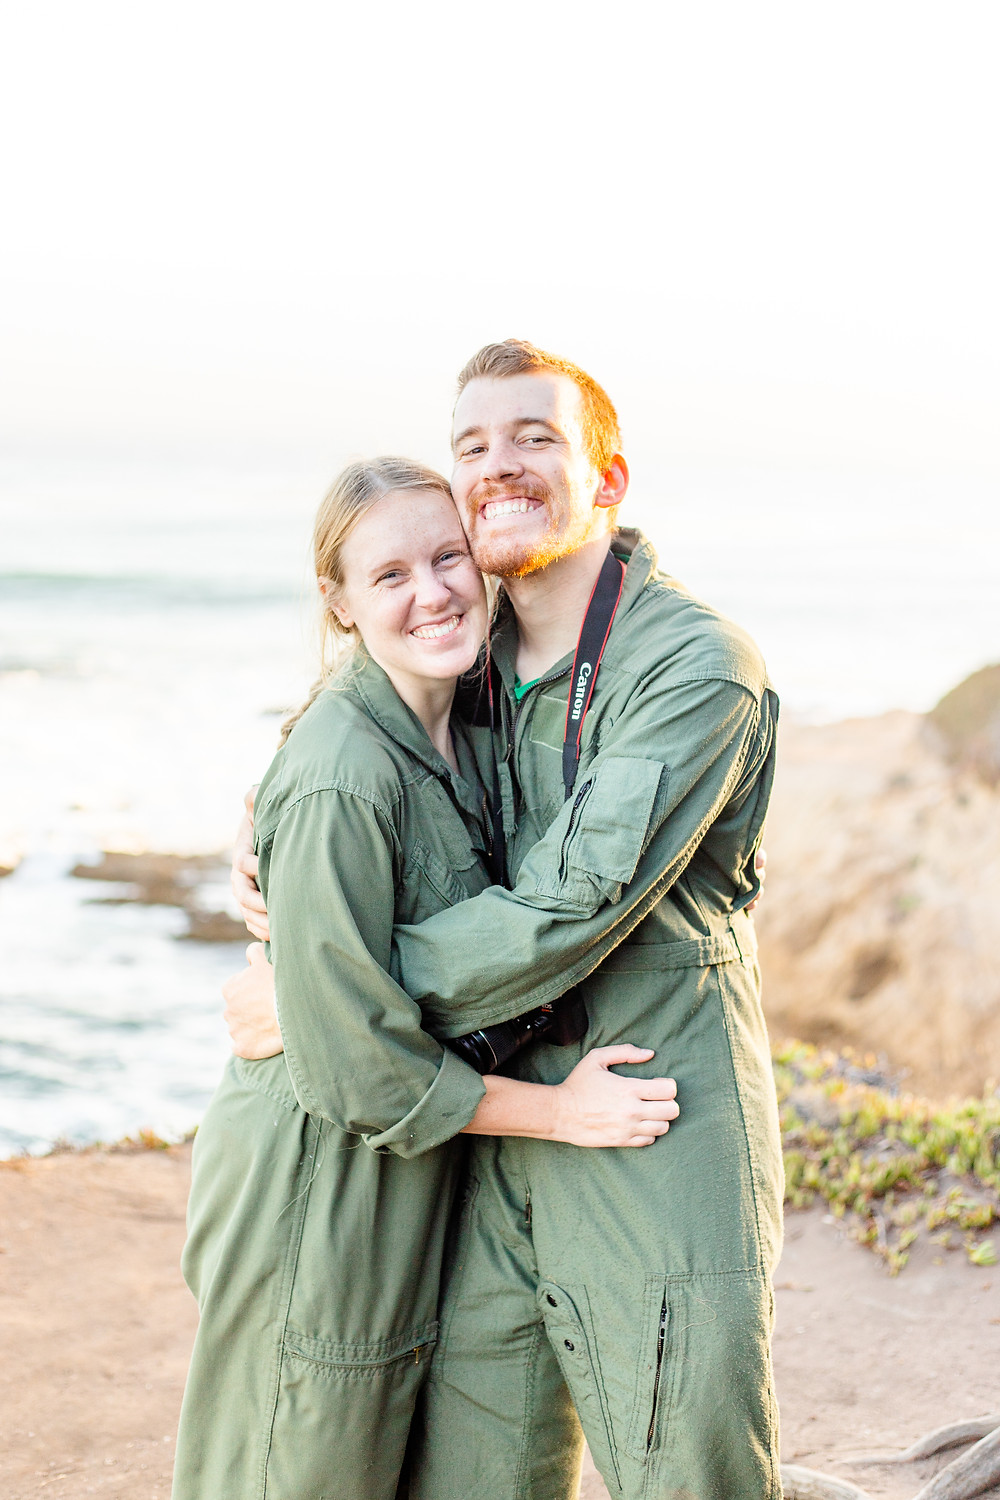 A photographer and her second shooter based in Fresno, CA hold each other close for a photo.